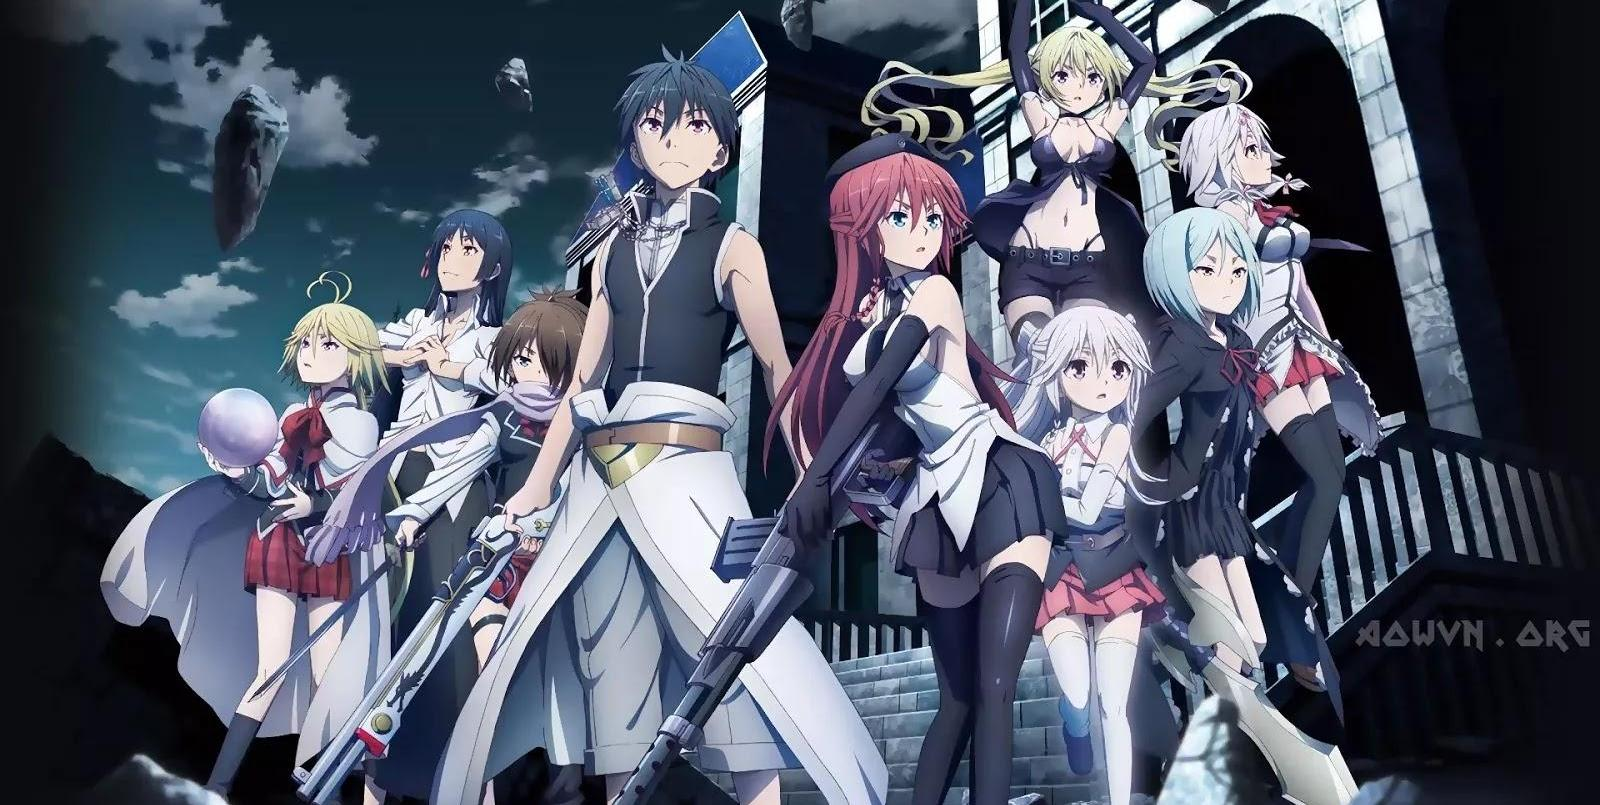 Xem phim Trinity Seven Movie 2: Tenkuu Toshokan to Shinku no Maou - Gekijouban Trinity Seven 2, Trinity Seven Movie 2: Heavens Library & Crimson Lord Vietsub